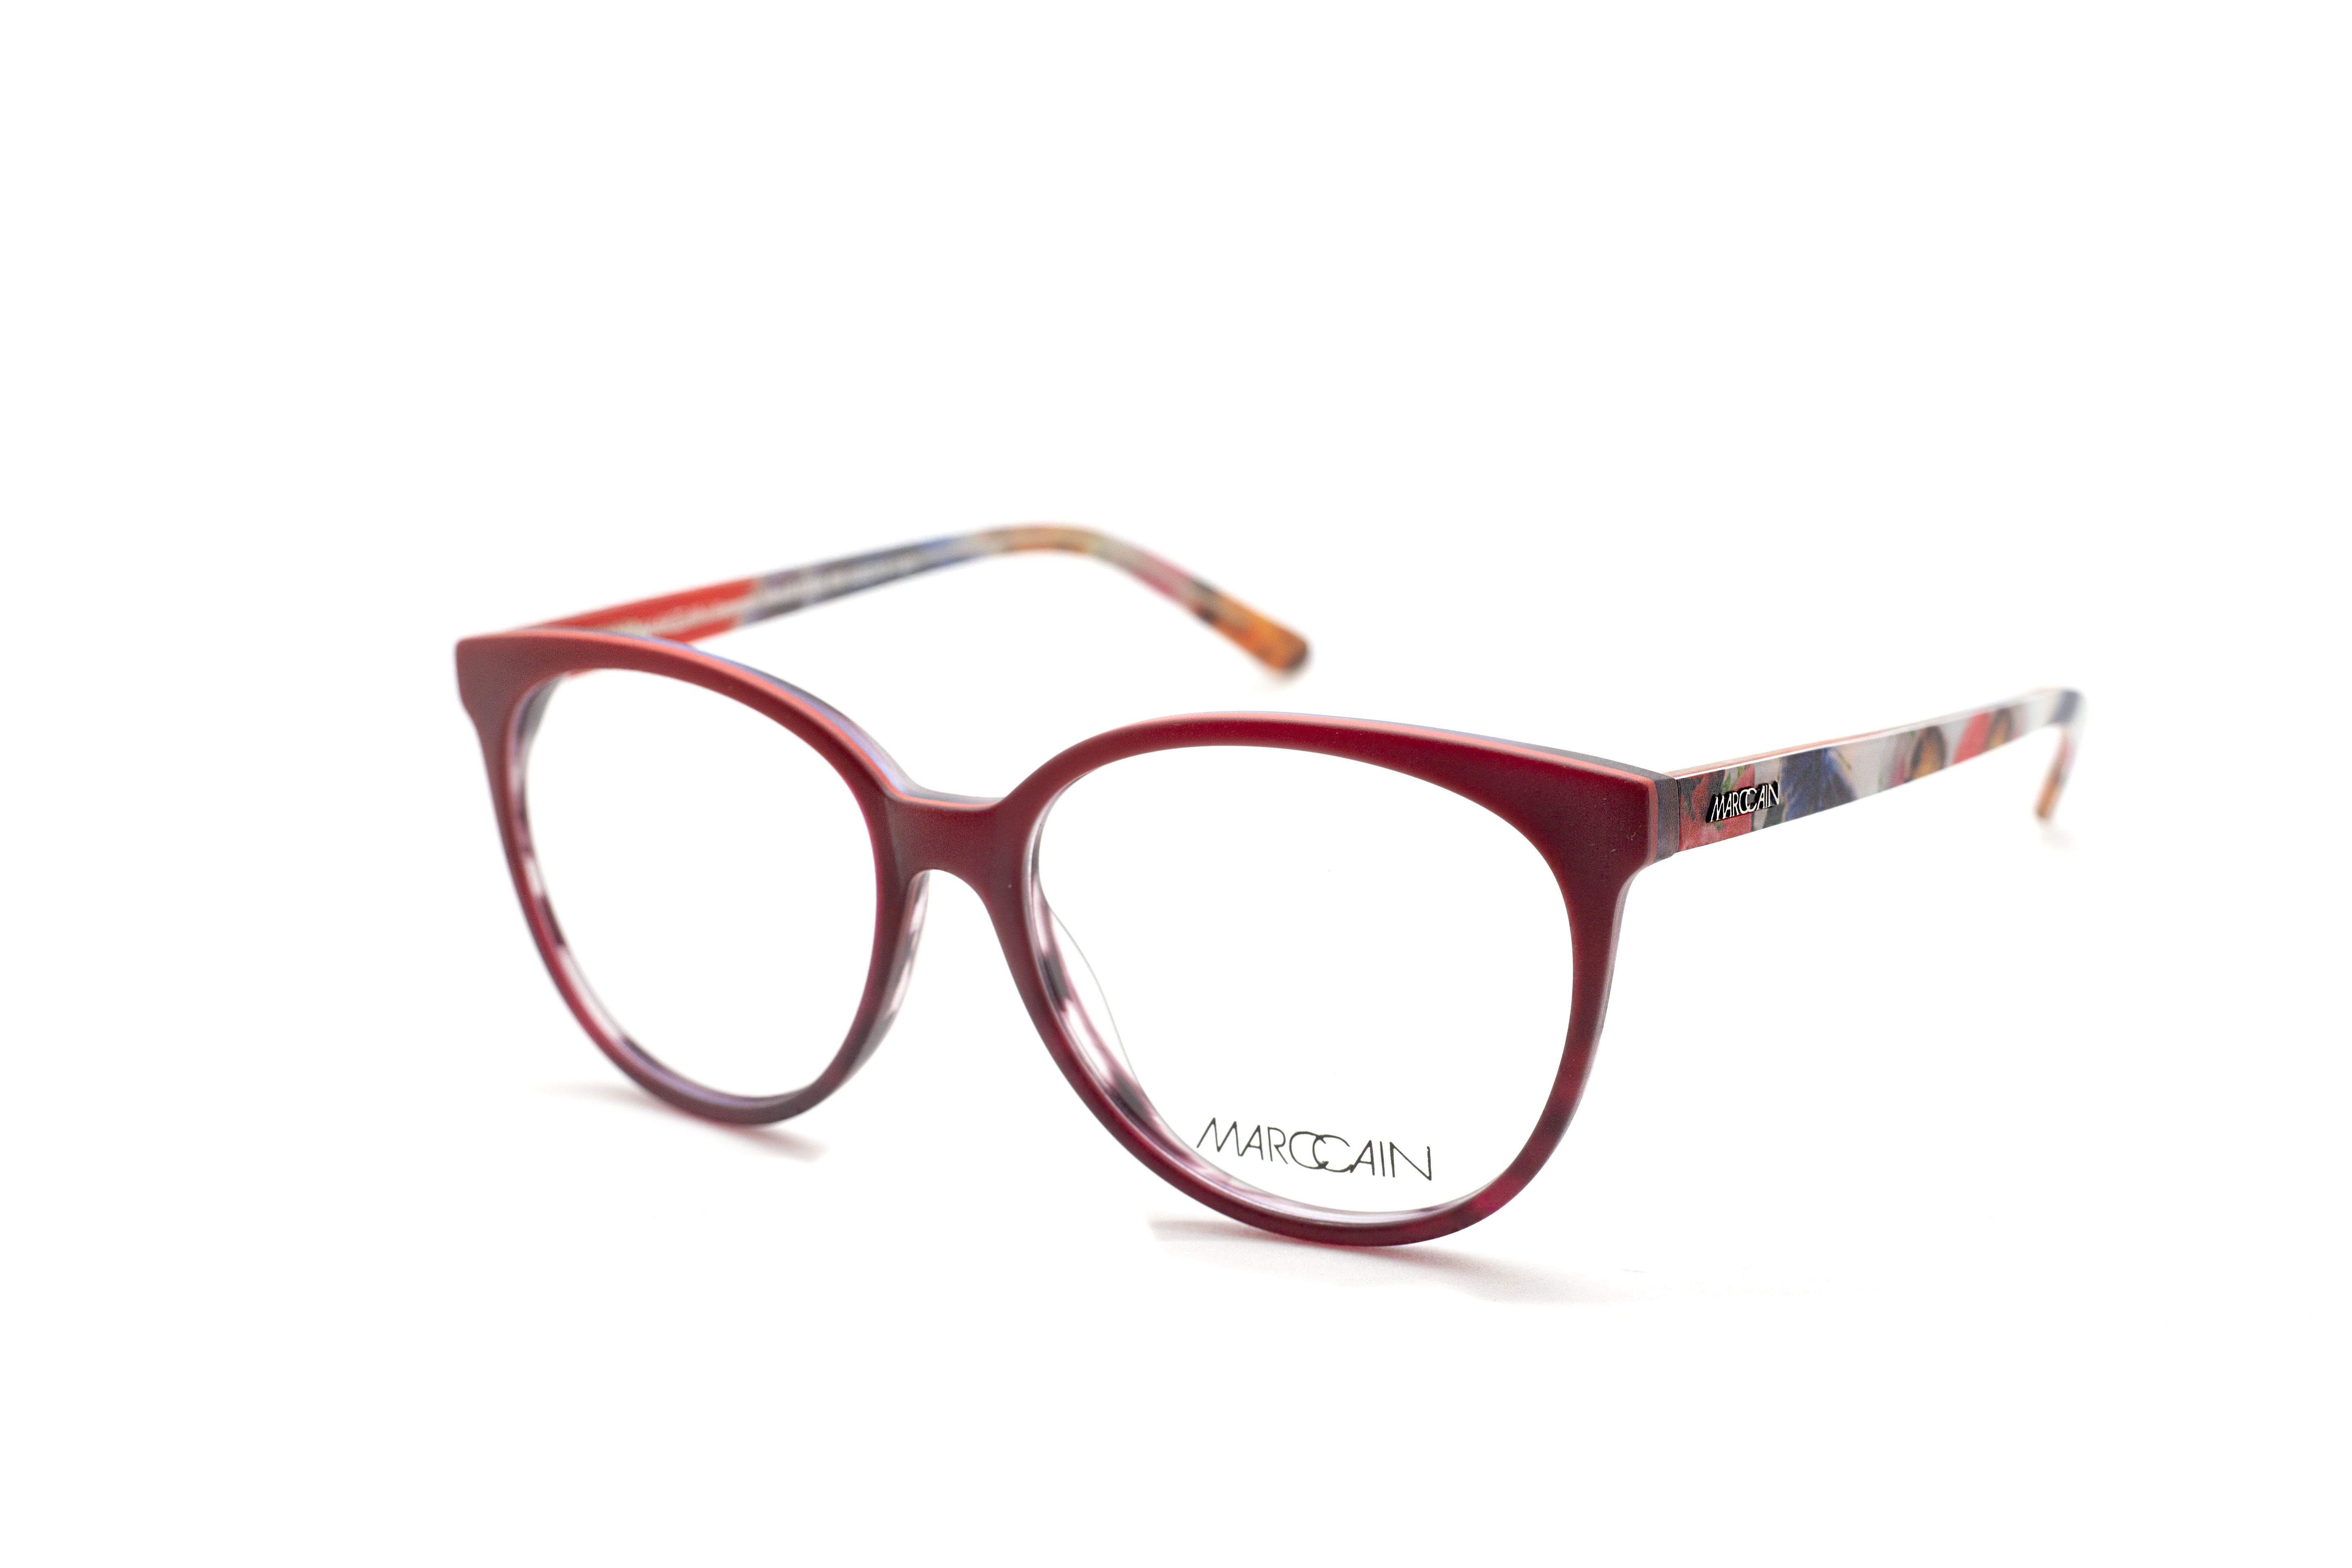 Marc Cain 81084 - Red (RR)